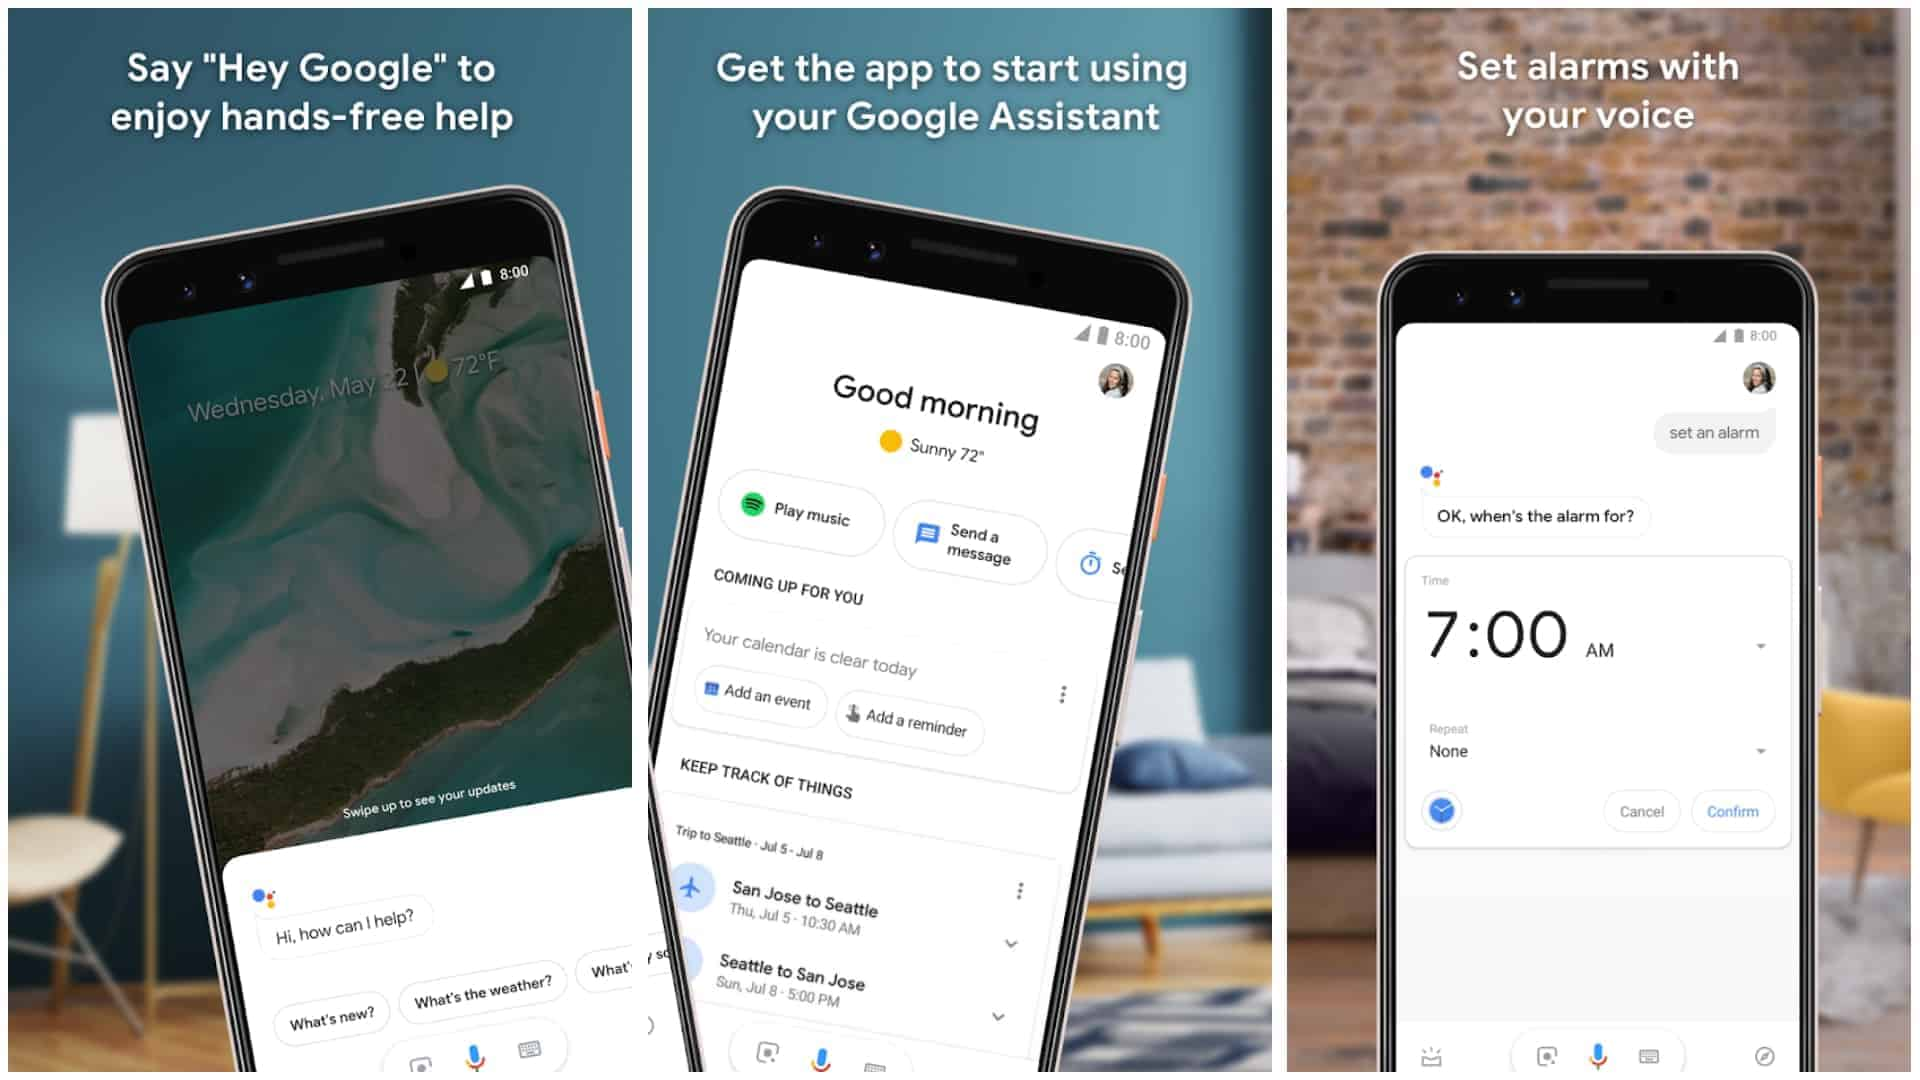 Google Assistant app image December 2019